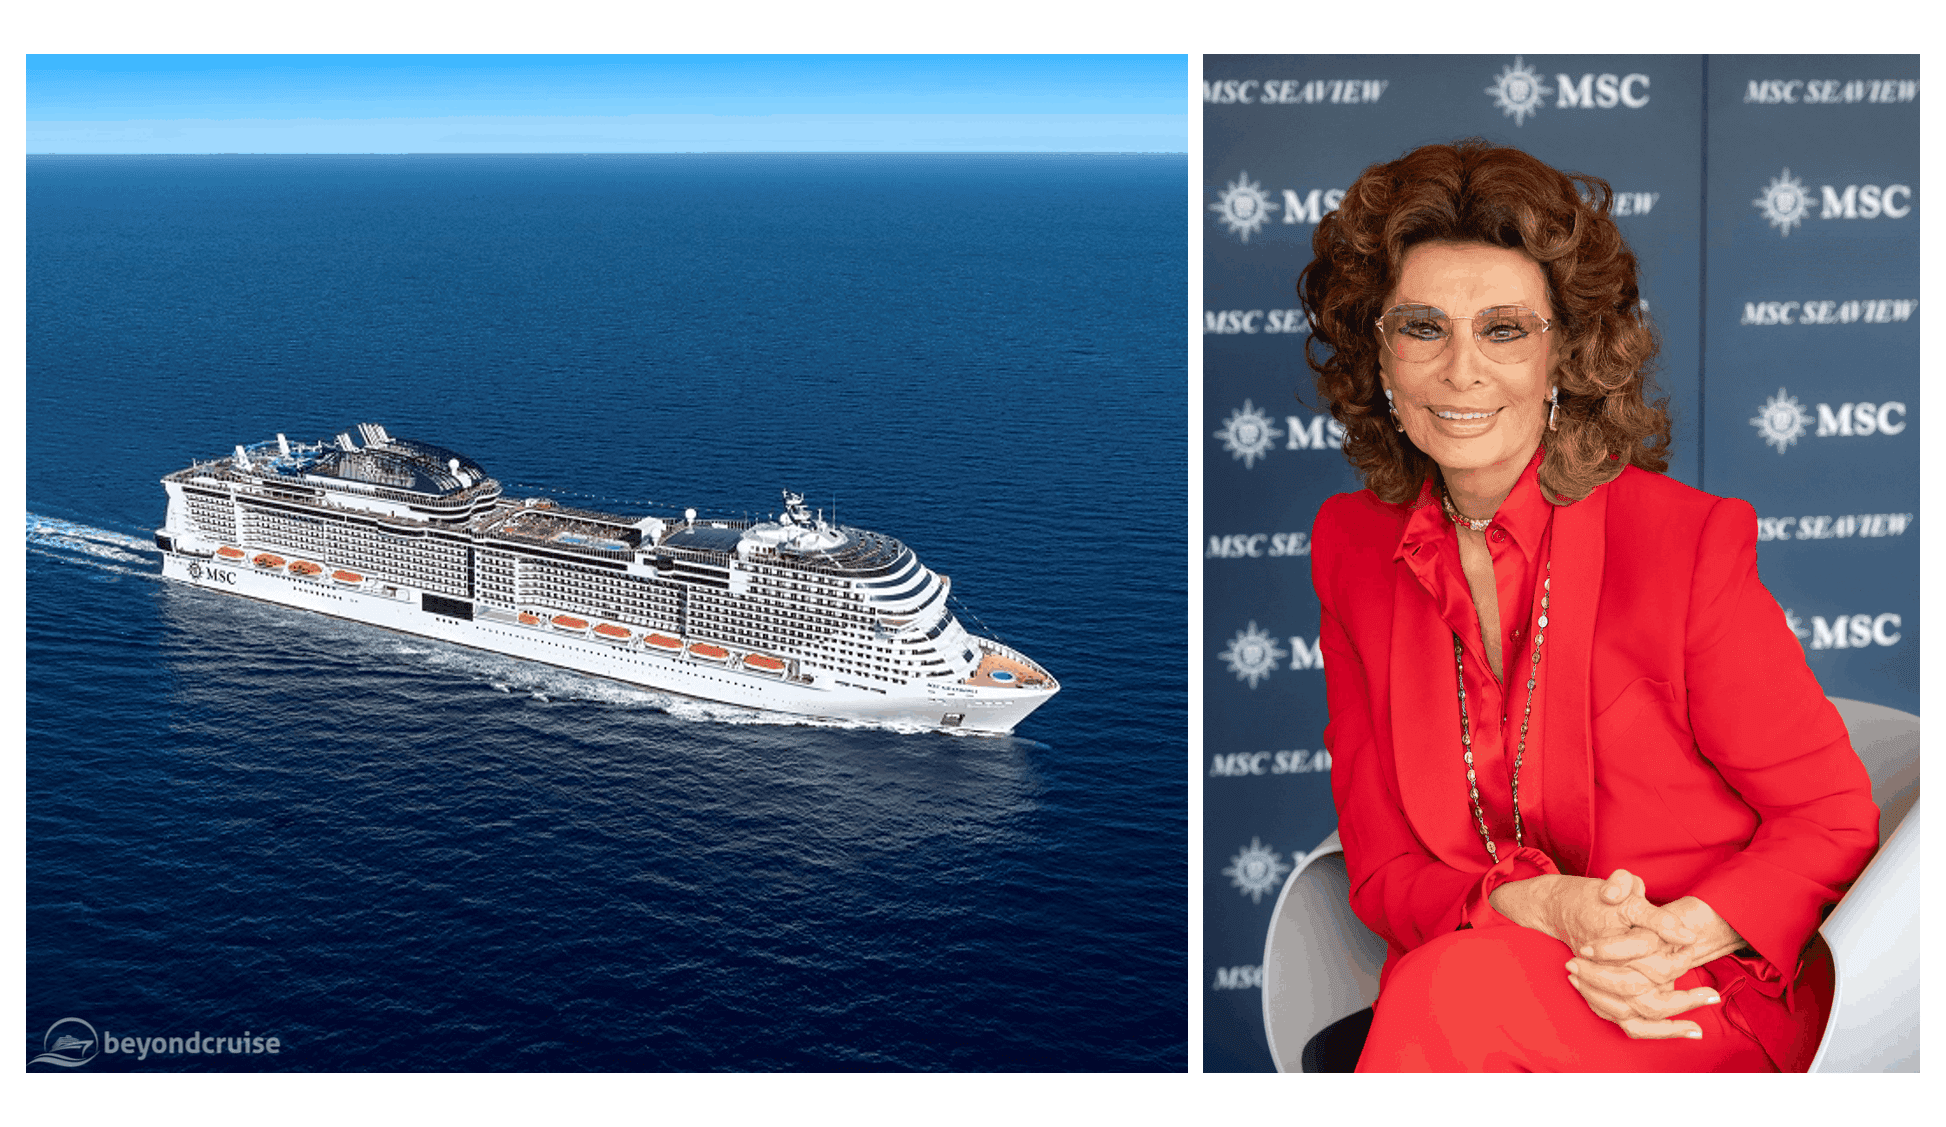 MSC Grandiosa naming ceremony preview